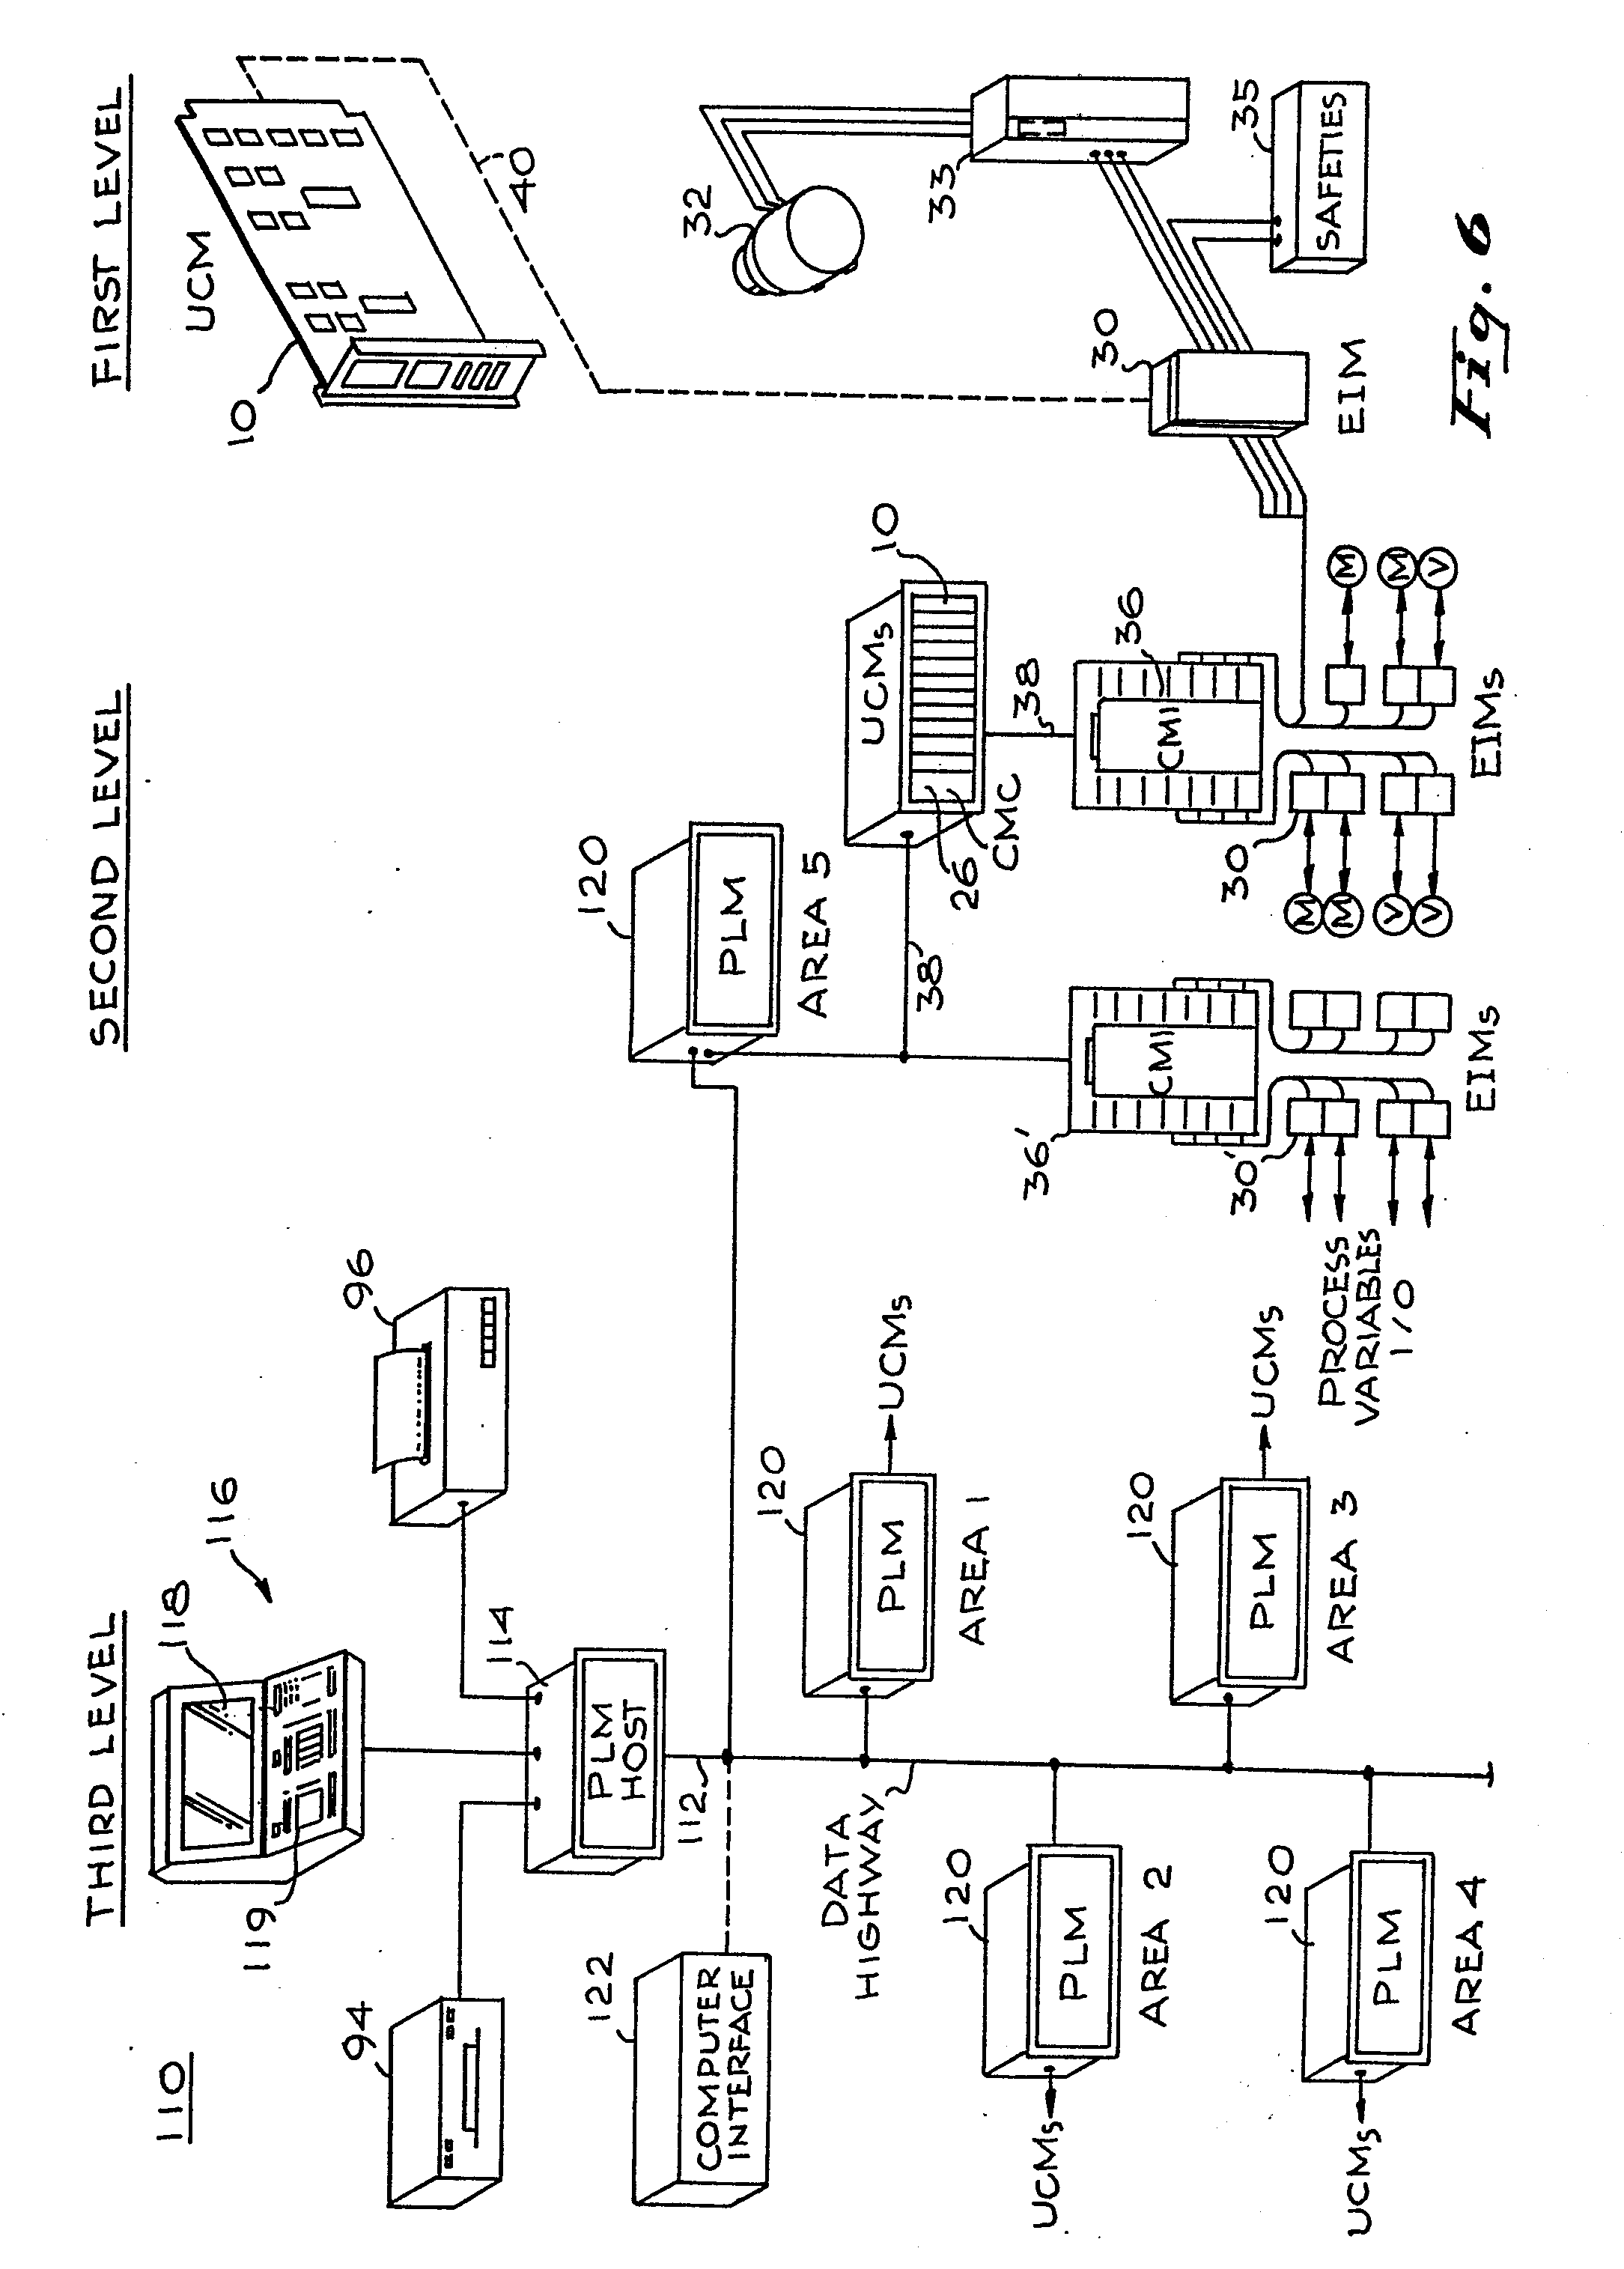 patent ep0109734a2 - system for monitoring and control of electrical drive devices